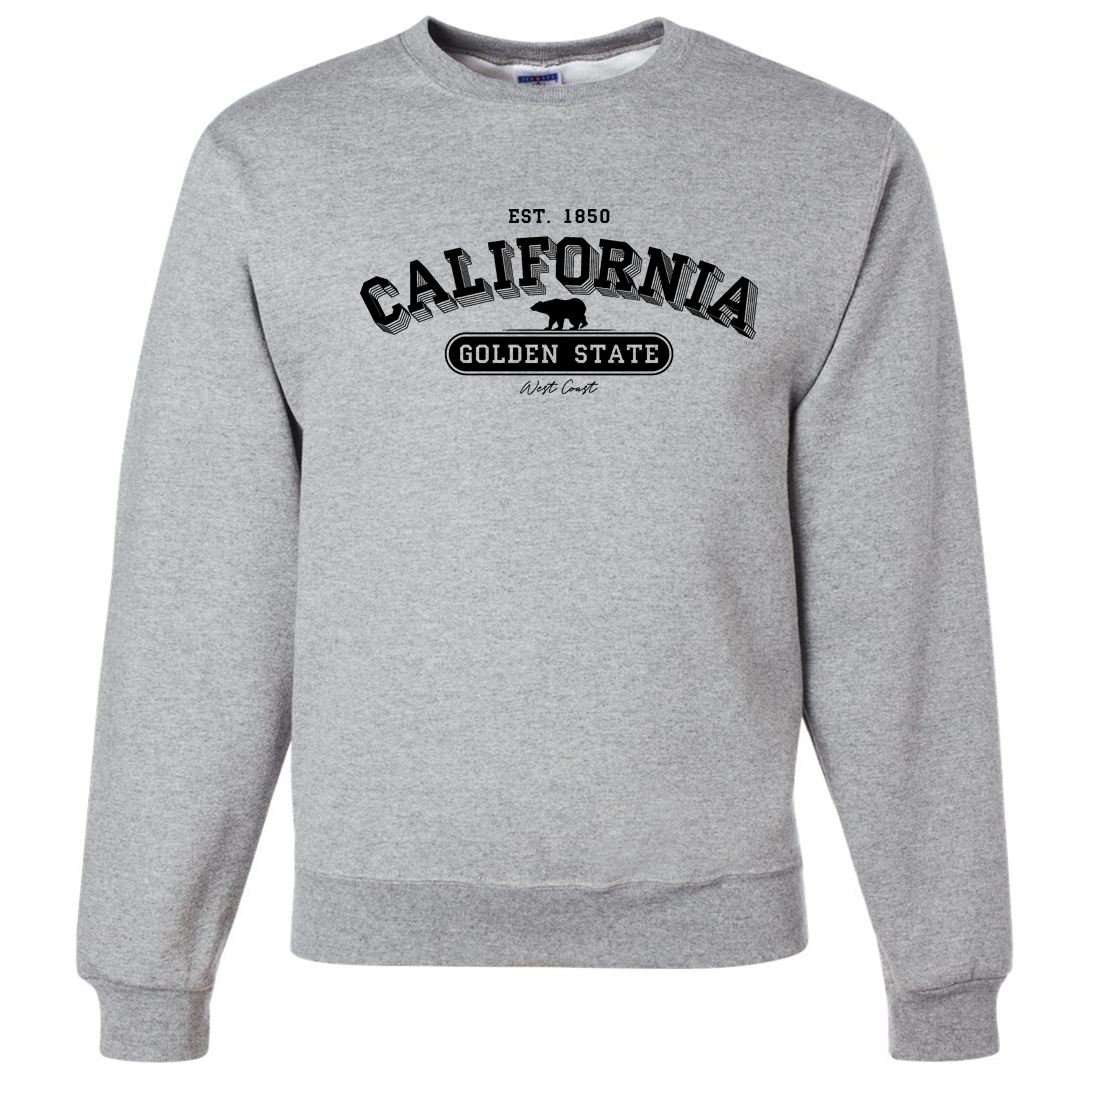 California Golden State 1850 Crewneck Sweatshirt